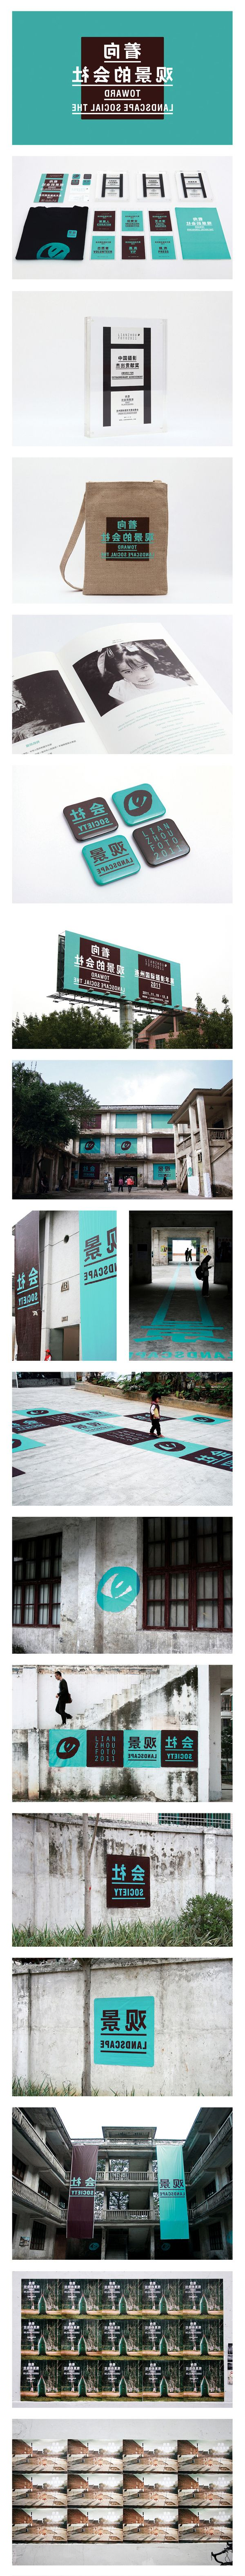 LIAN ZHOU FOTO 2011 by peiyuan chen, via Behance